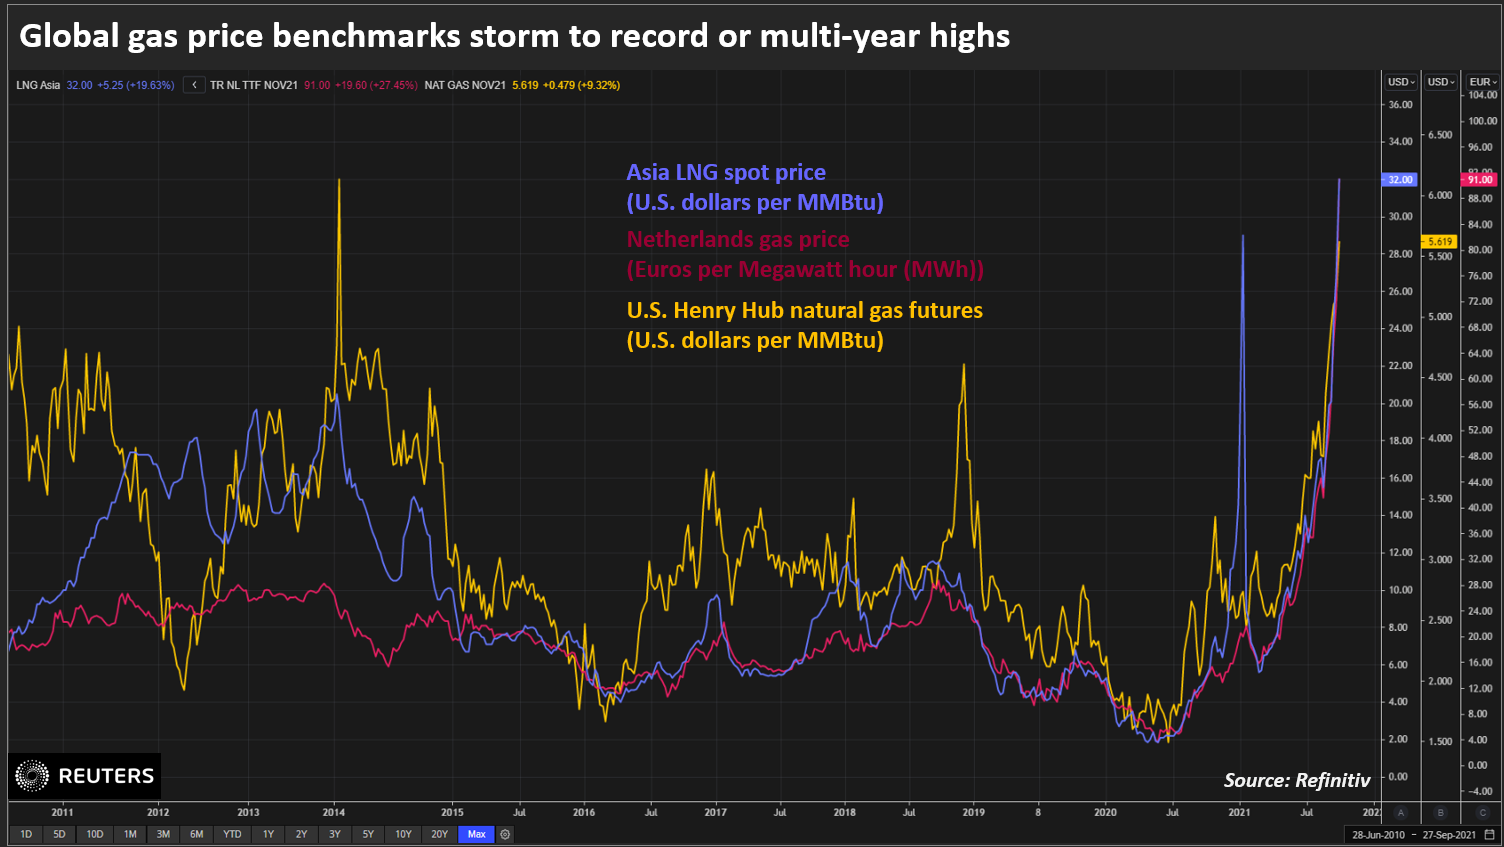 Global gas price benchmarks storm to record or multi-year highs